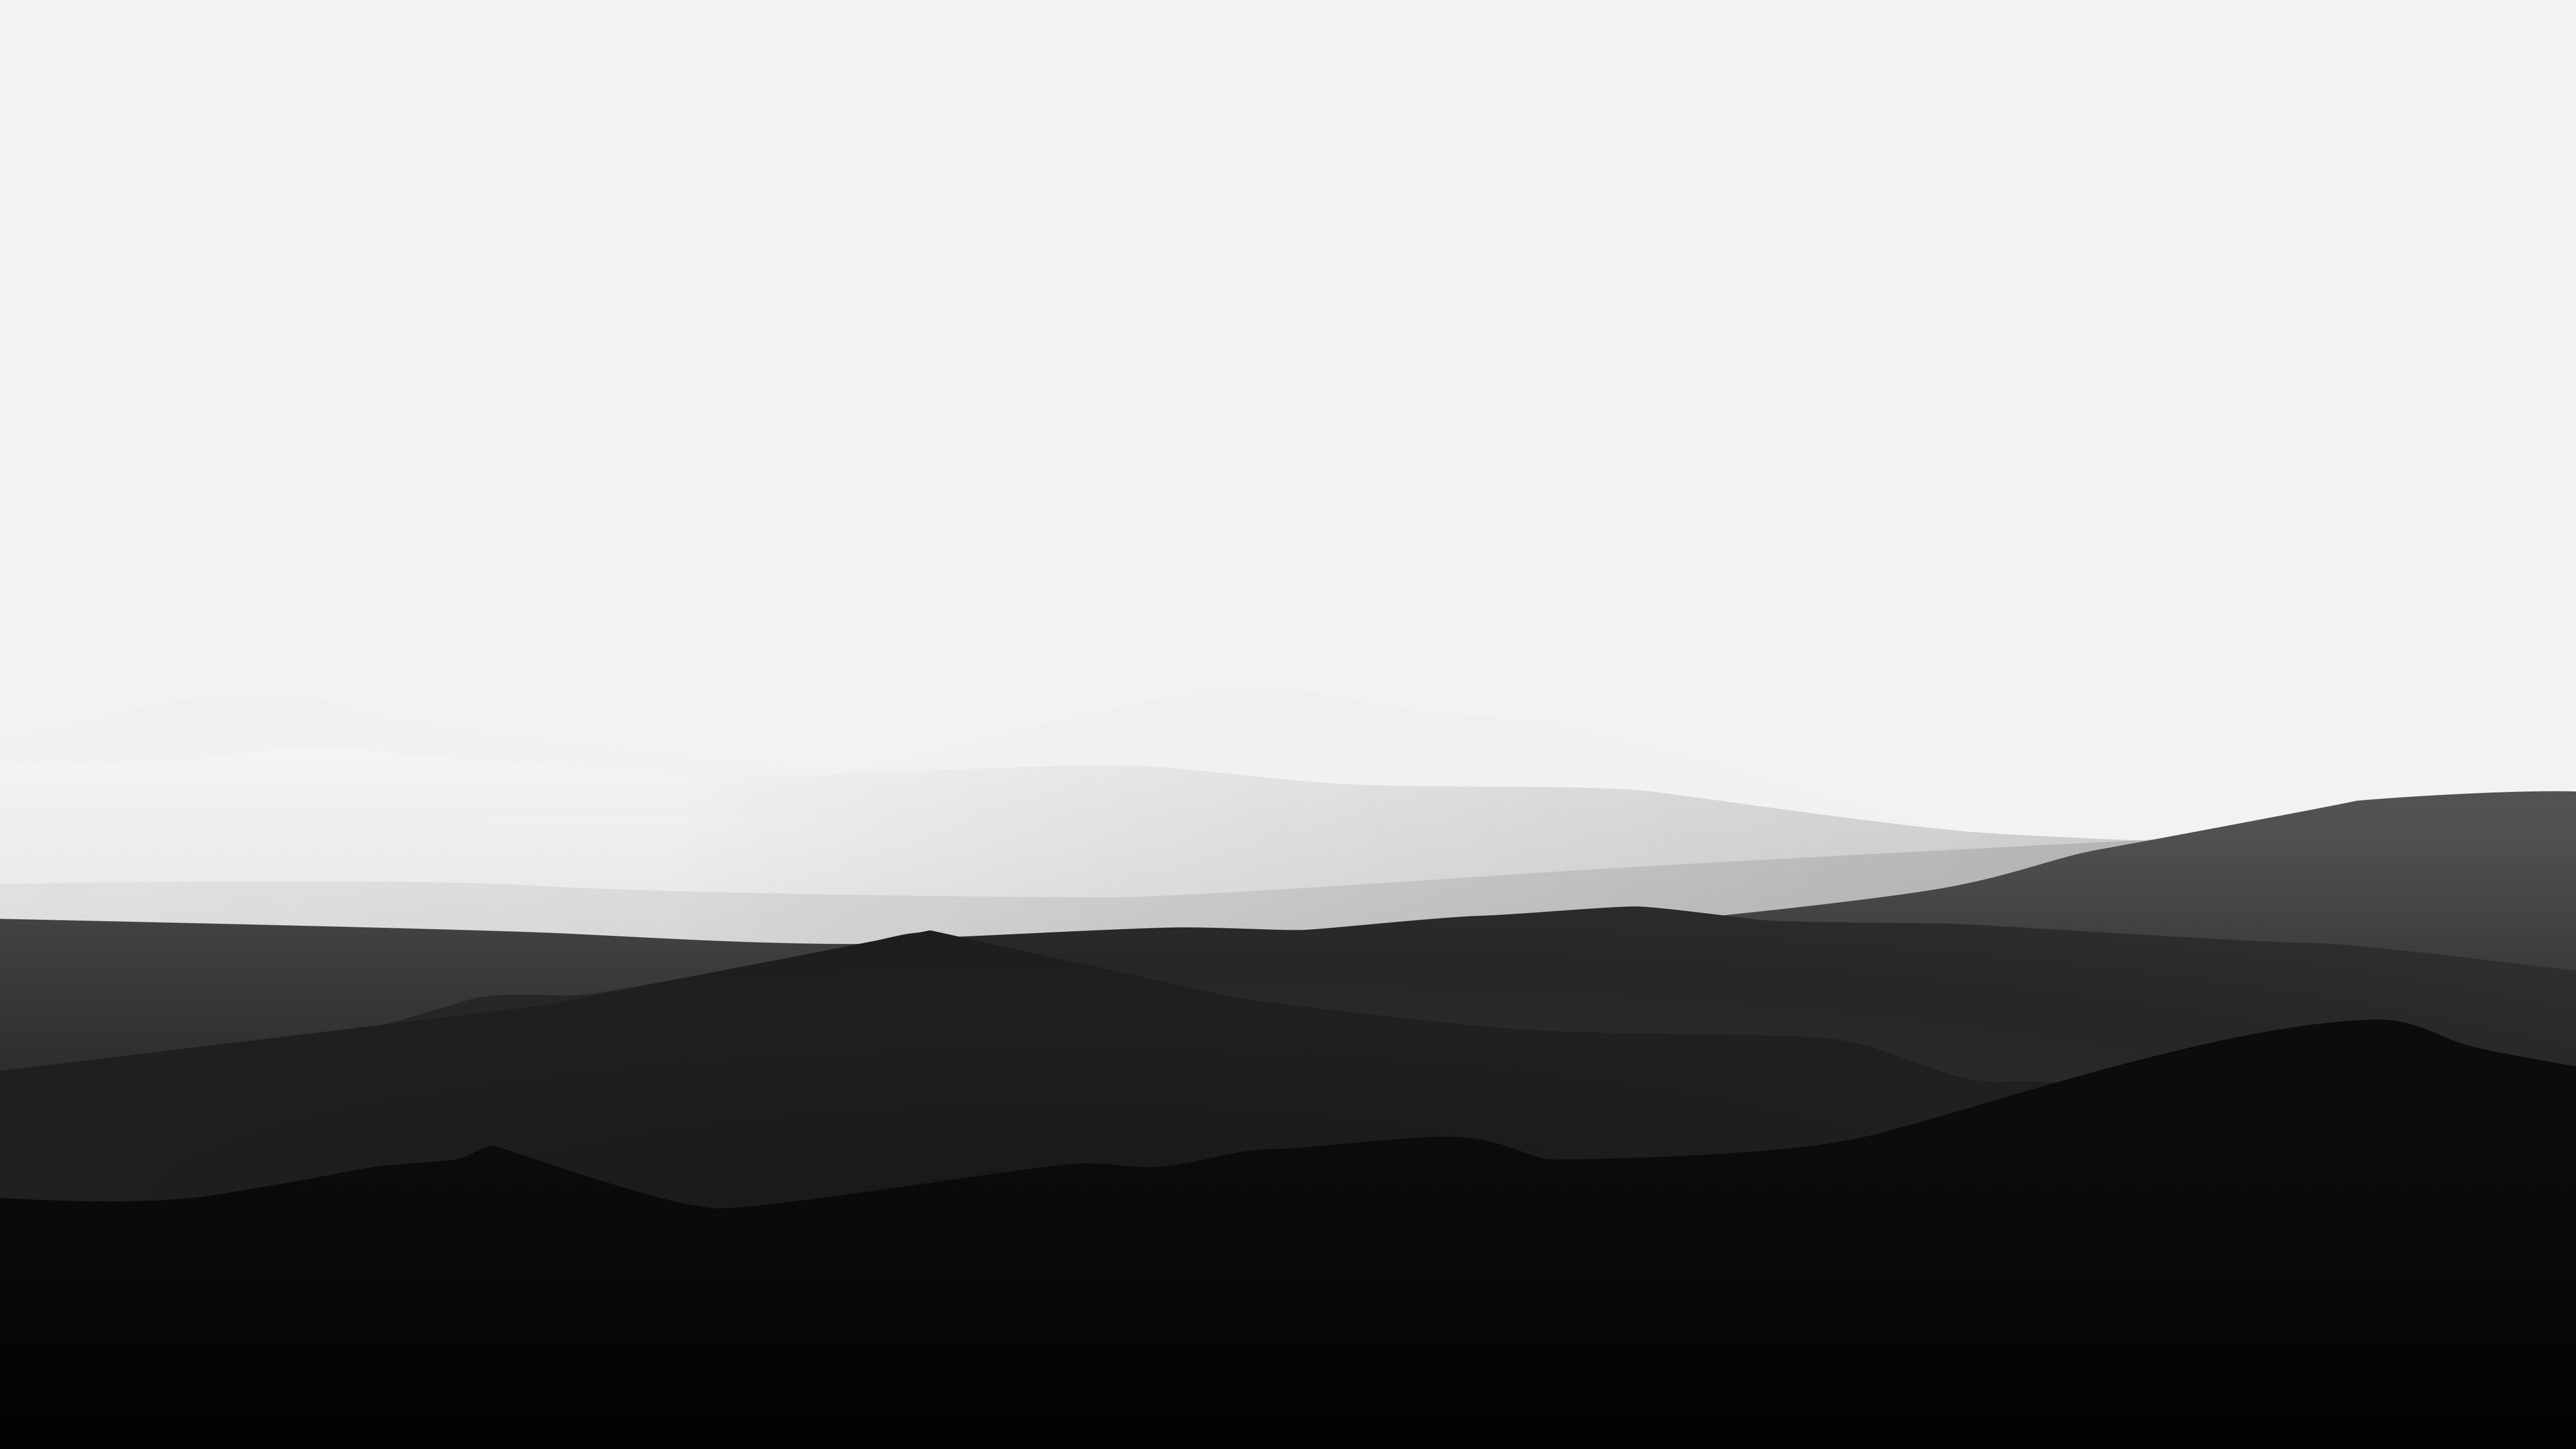 Wallpaper 4k Minimalist Mountains Black And White 4k Black And